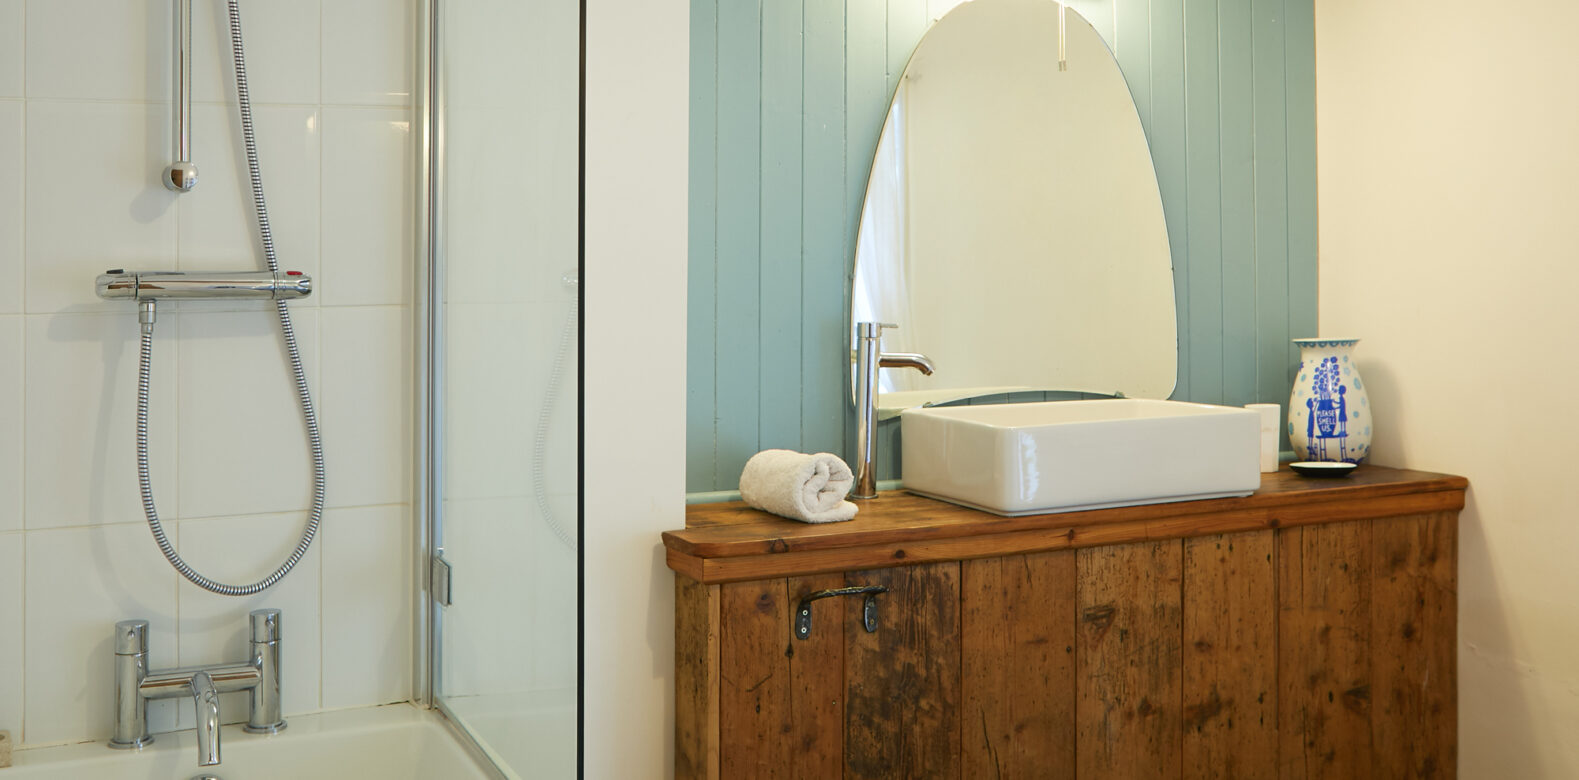 A bright bathroom sink and shower